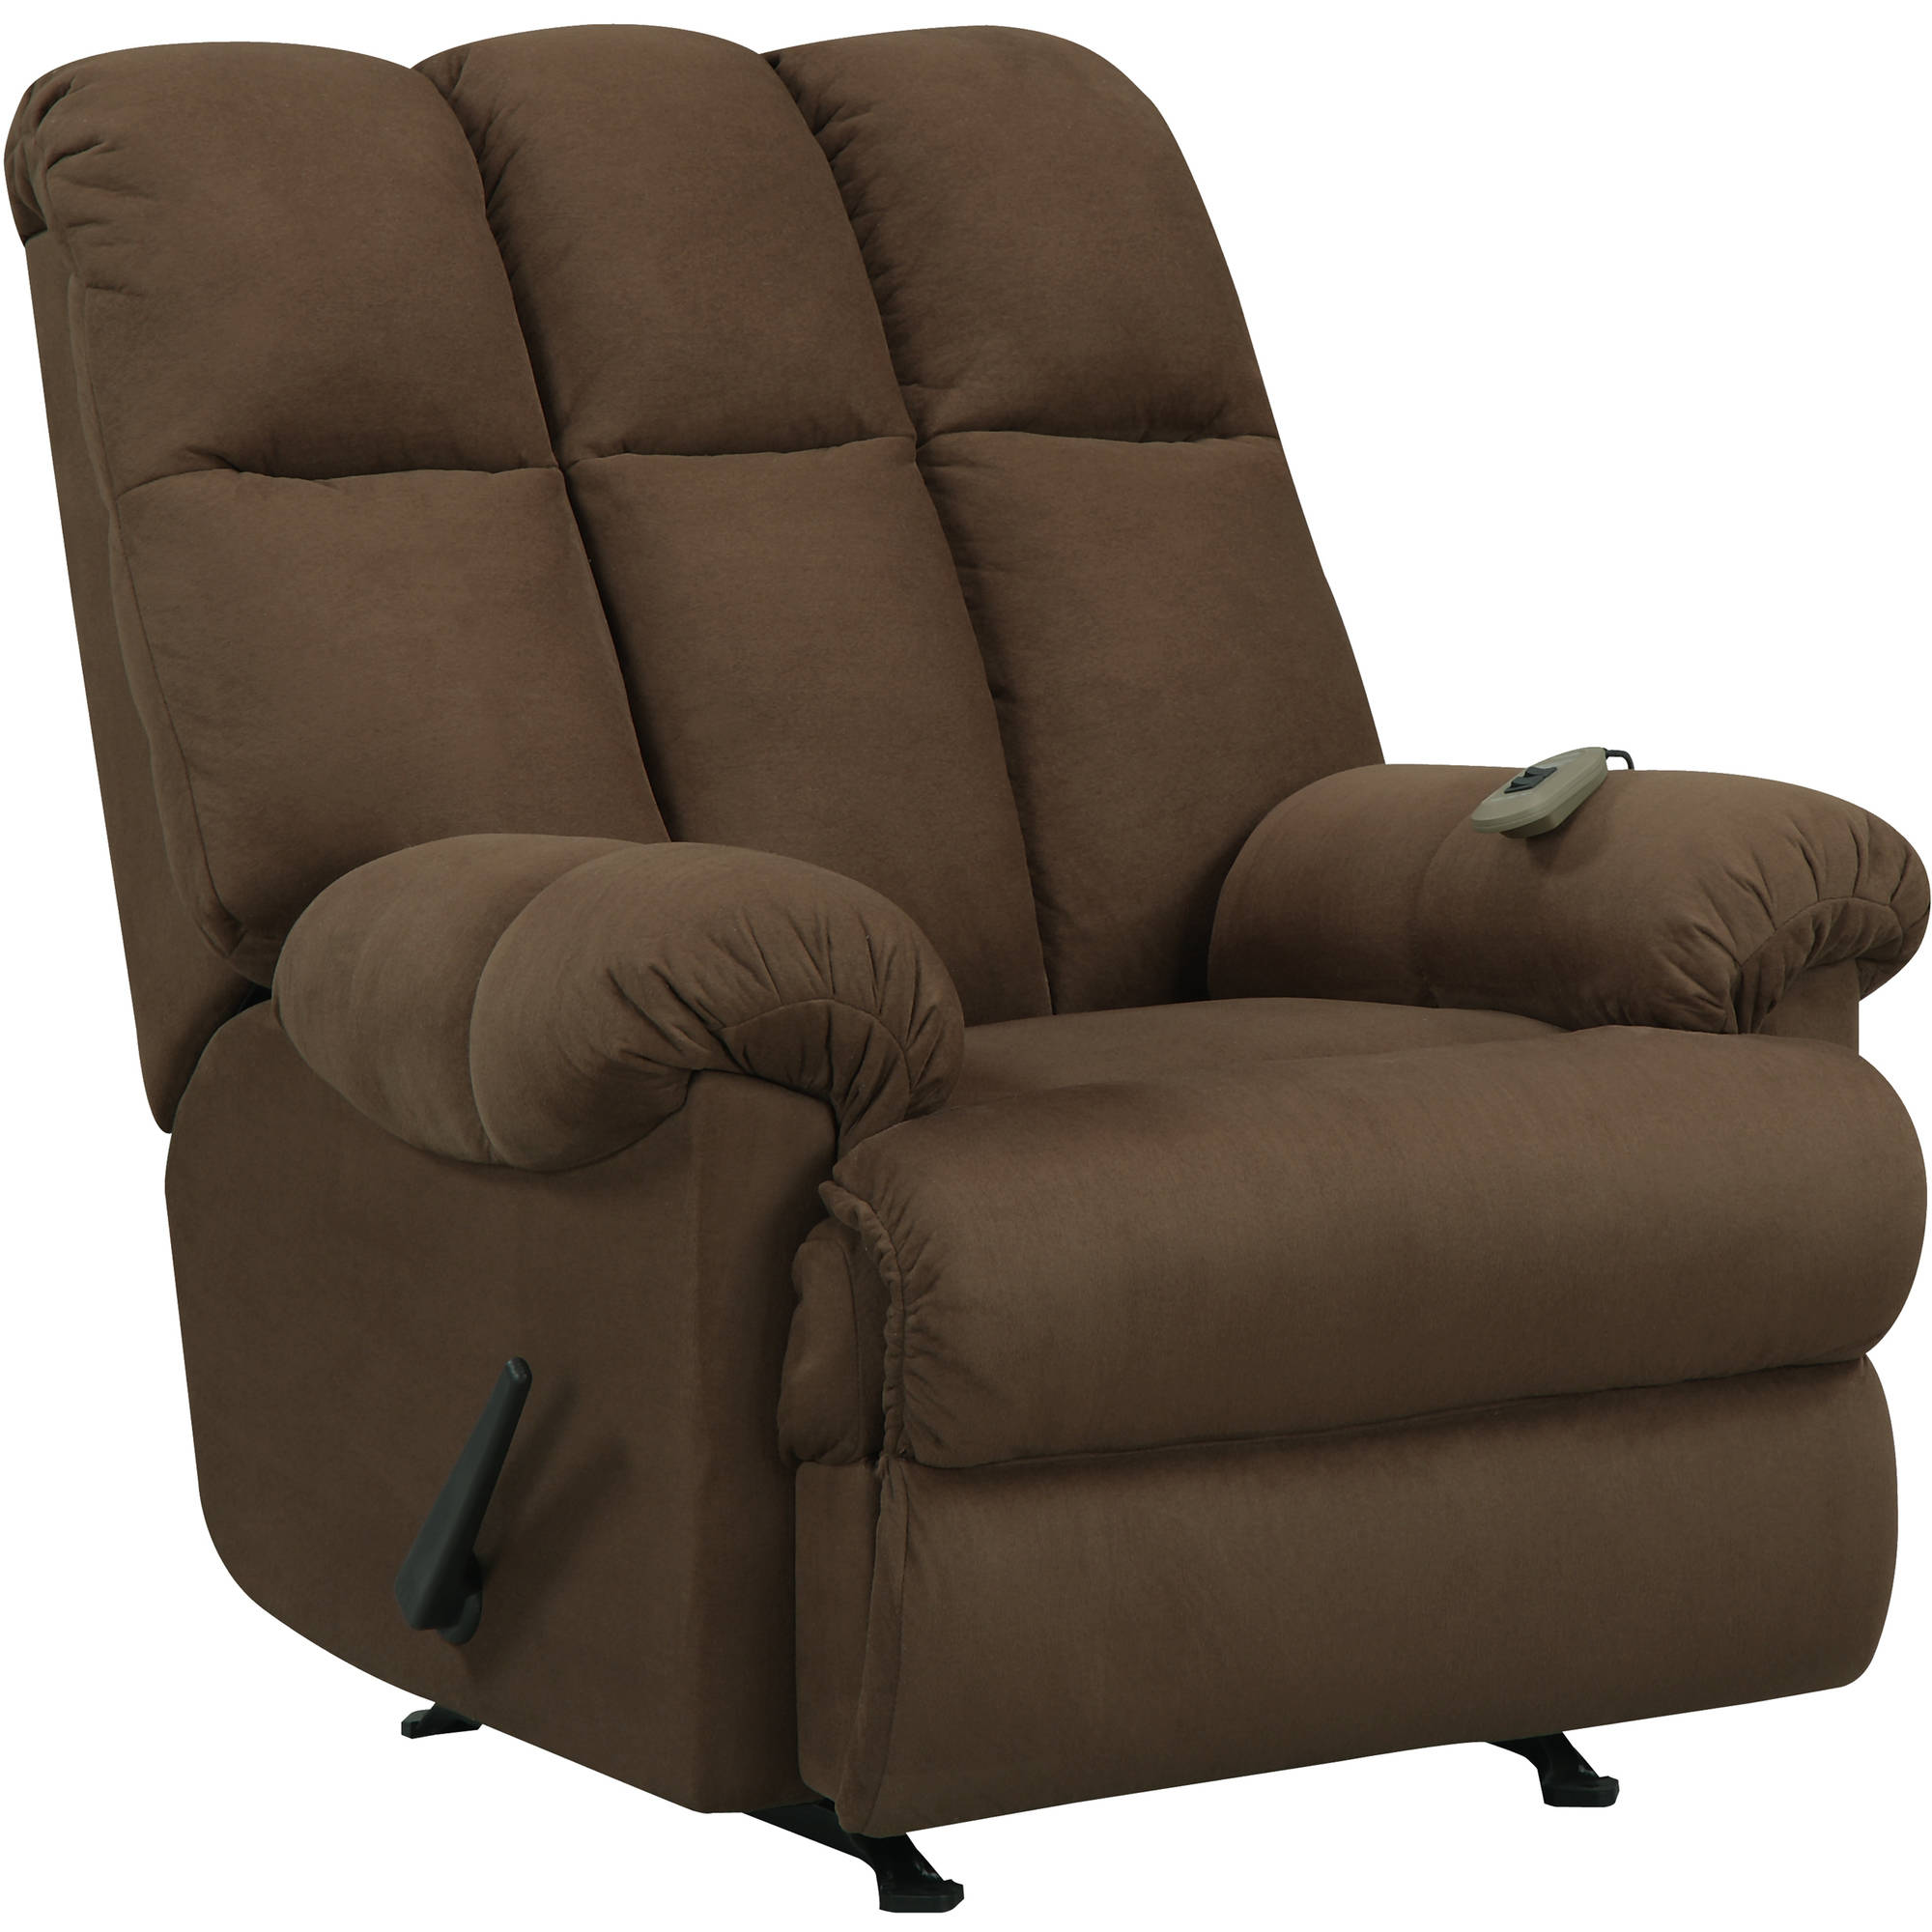 Dorel Living Padded Massage Rocker Recliner Multiple Colors - Walmart.com  sc 1 st  Walmart : model 7528 recliner - islam-shia.org